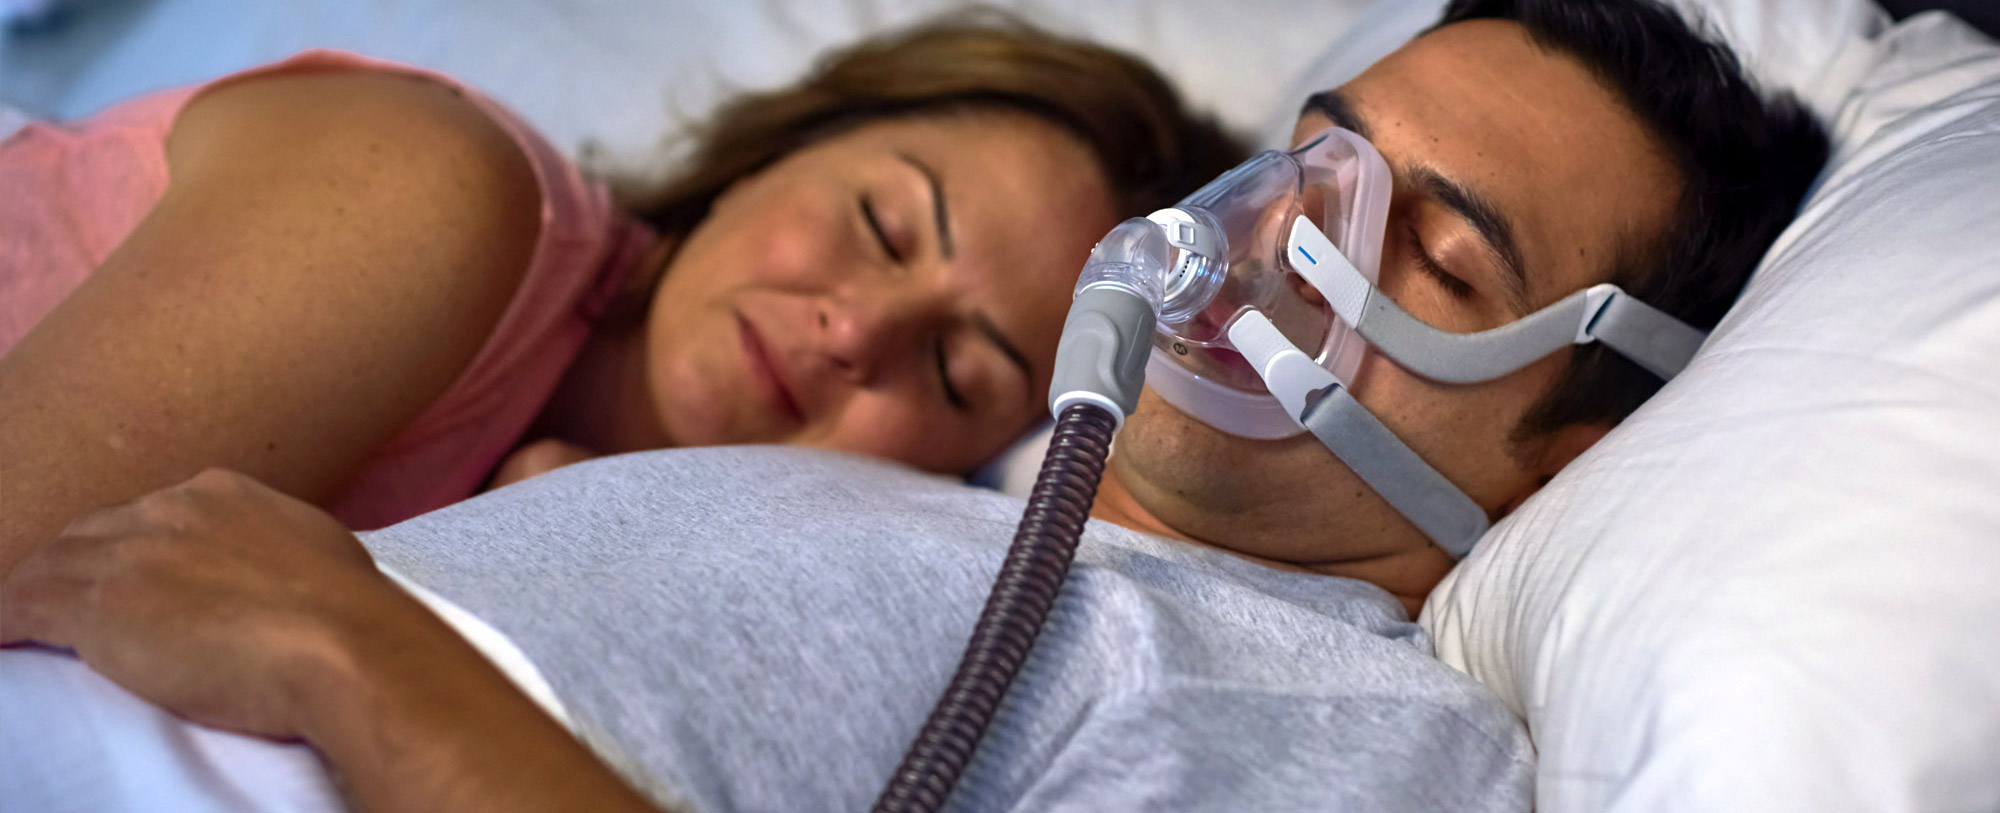 Res Med AirFit F20 Full Face CPAP Mask  Home Lifecare